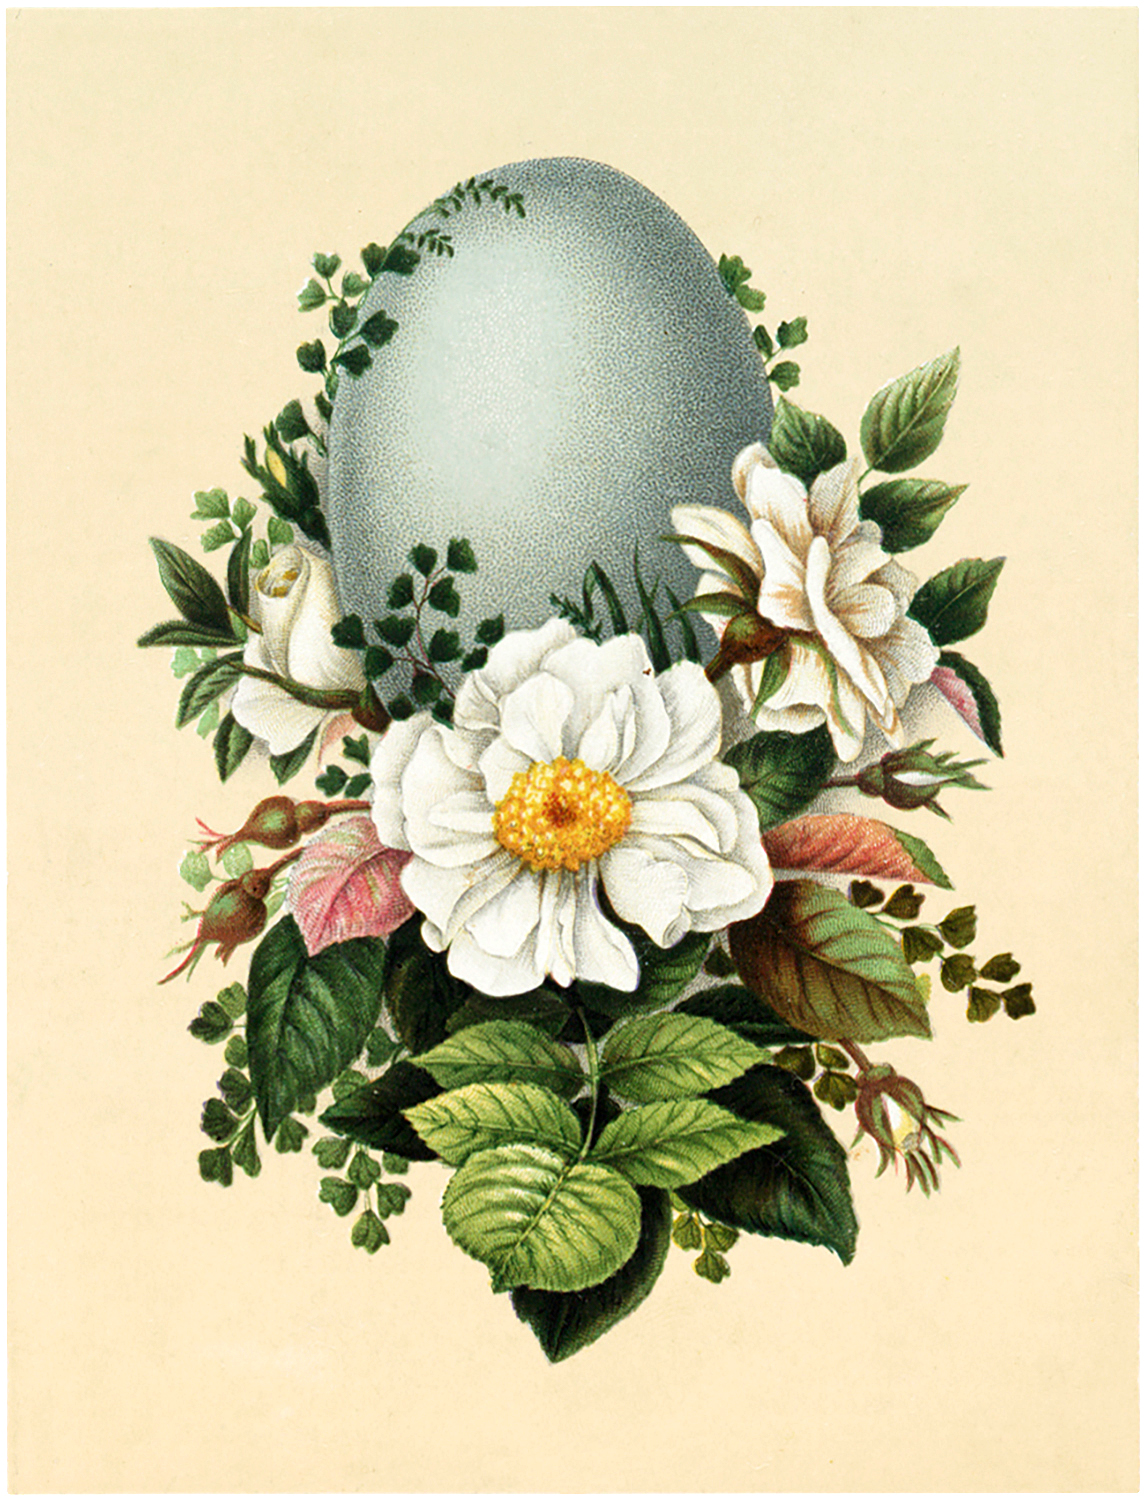 Vintage Floral Easter Display Image